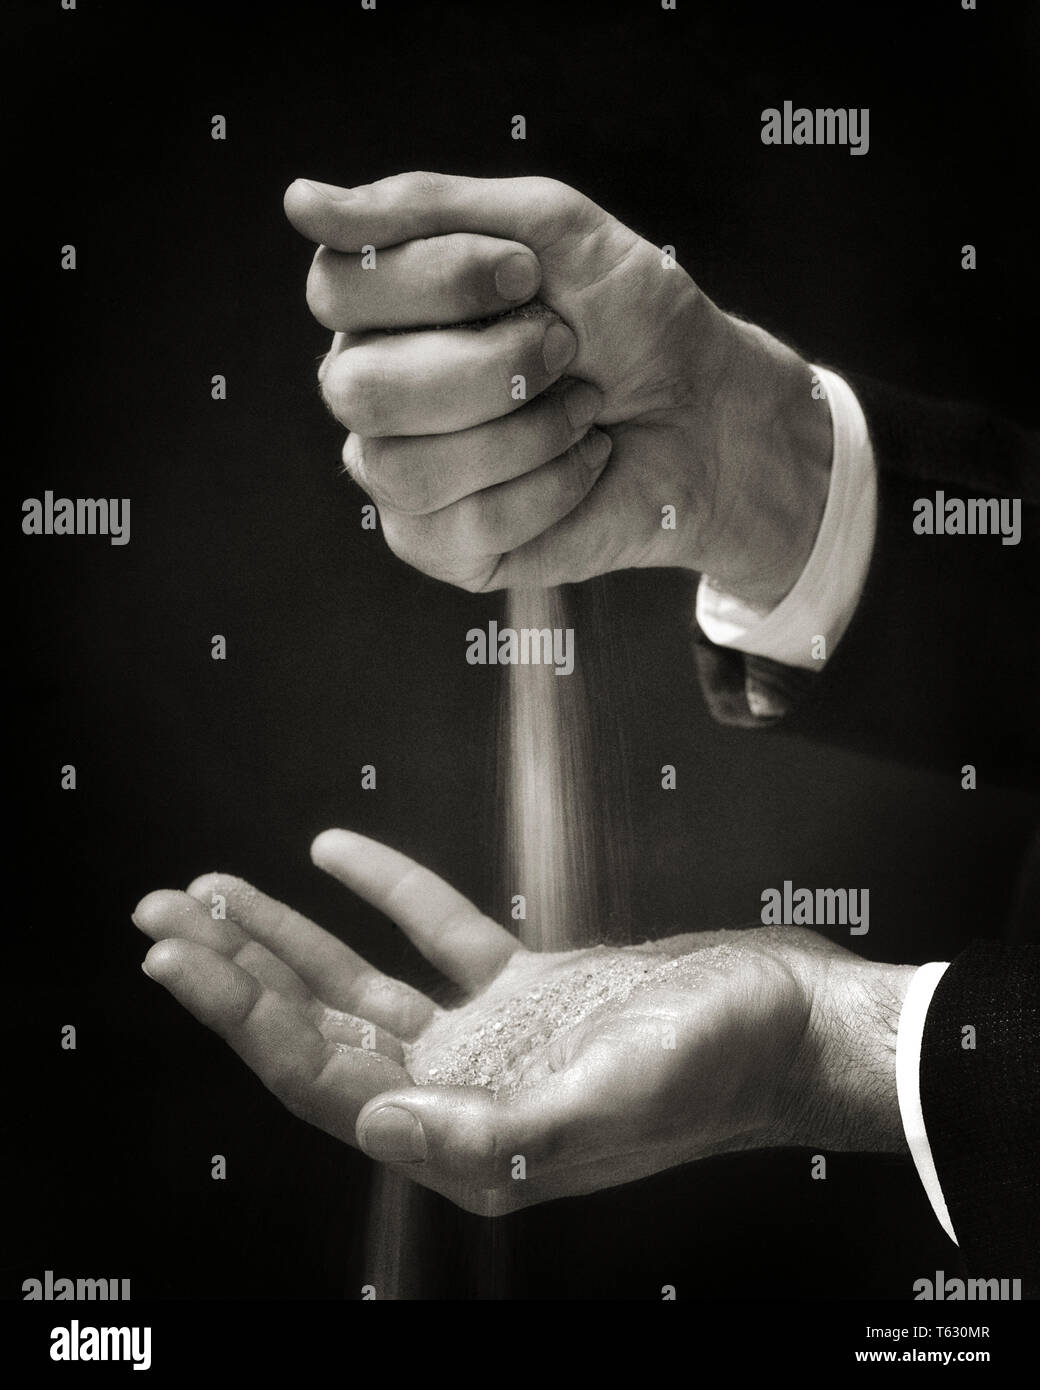 1930s SYMBOLIC HANDS OF A MAN HOLDING LETTING SANDS OF TIME FALL FROM ONE HAND TO THE OTHER - s8433 HAR001 HARS SENIOR MAN SENIOR ADULT MIDDLE-AGED B&W MIDDLE-AGED MAN SUCCESS SUIT AND TIE DREAMS KNOWLEDGE POWERFUL A LETTING OF OPPORTUNITY THE TO SANDS OF TIME CONCEPT CONCEPTUAL CLOSE-UP ELDERLY MAN SYMBOLIC CONCEPTS IDEAS MID-ADULT MID-ADULT MAN YOUNG ADULT MAN BLACK AND WHITE CAUCASIAN ETHNICITY HAR001 OLD FASHIONED REPRESENTATION - Stock Image